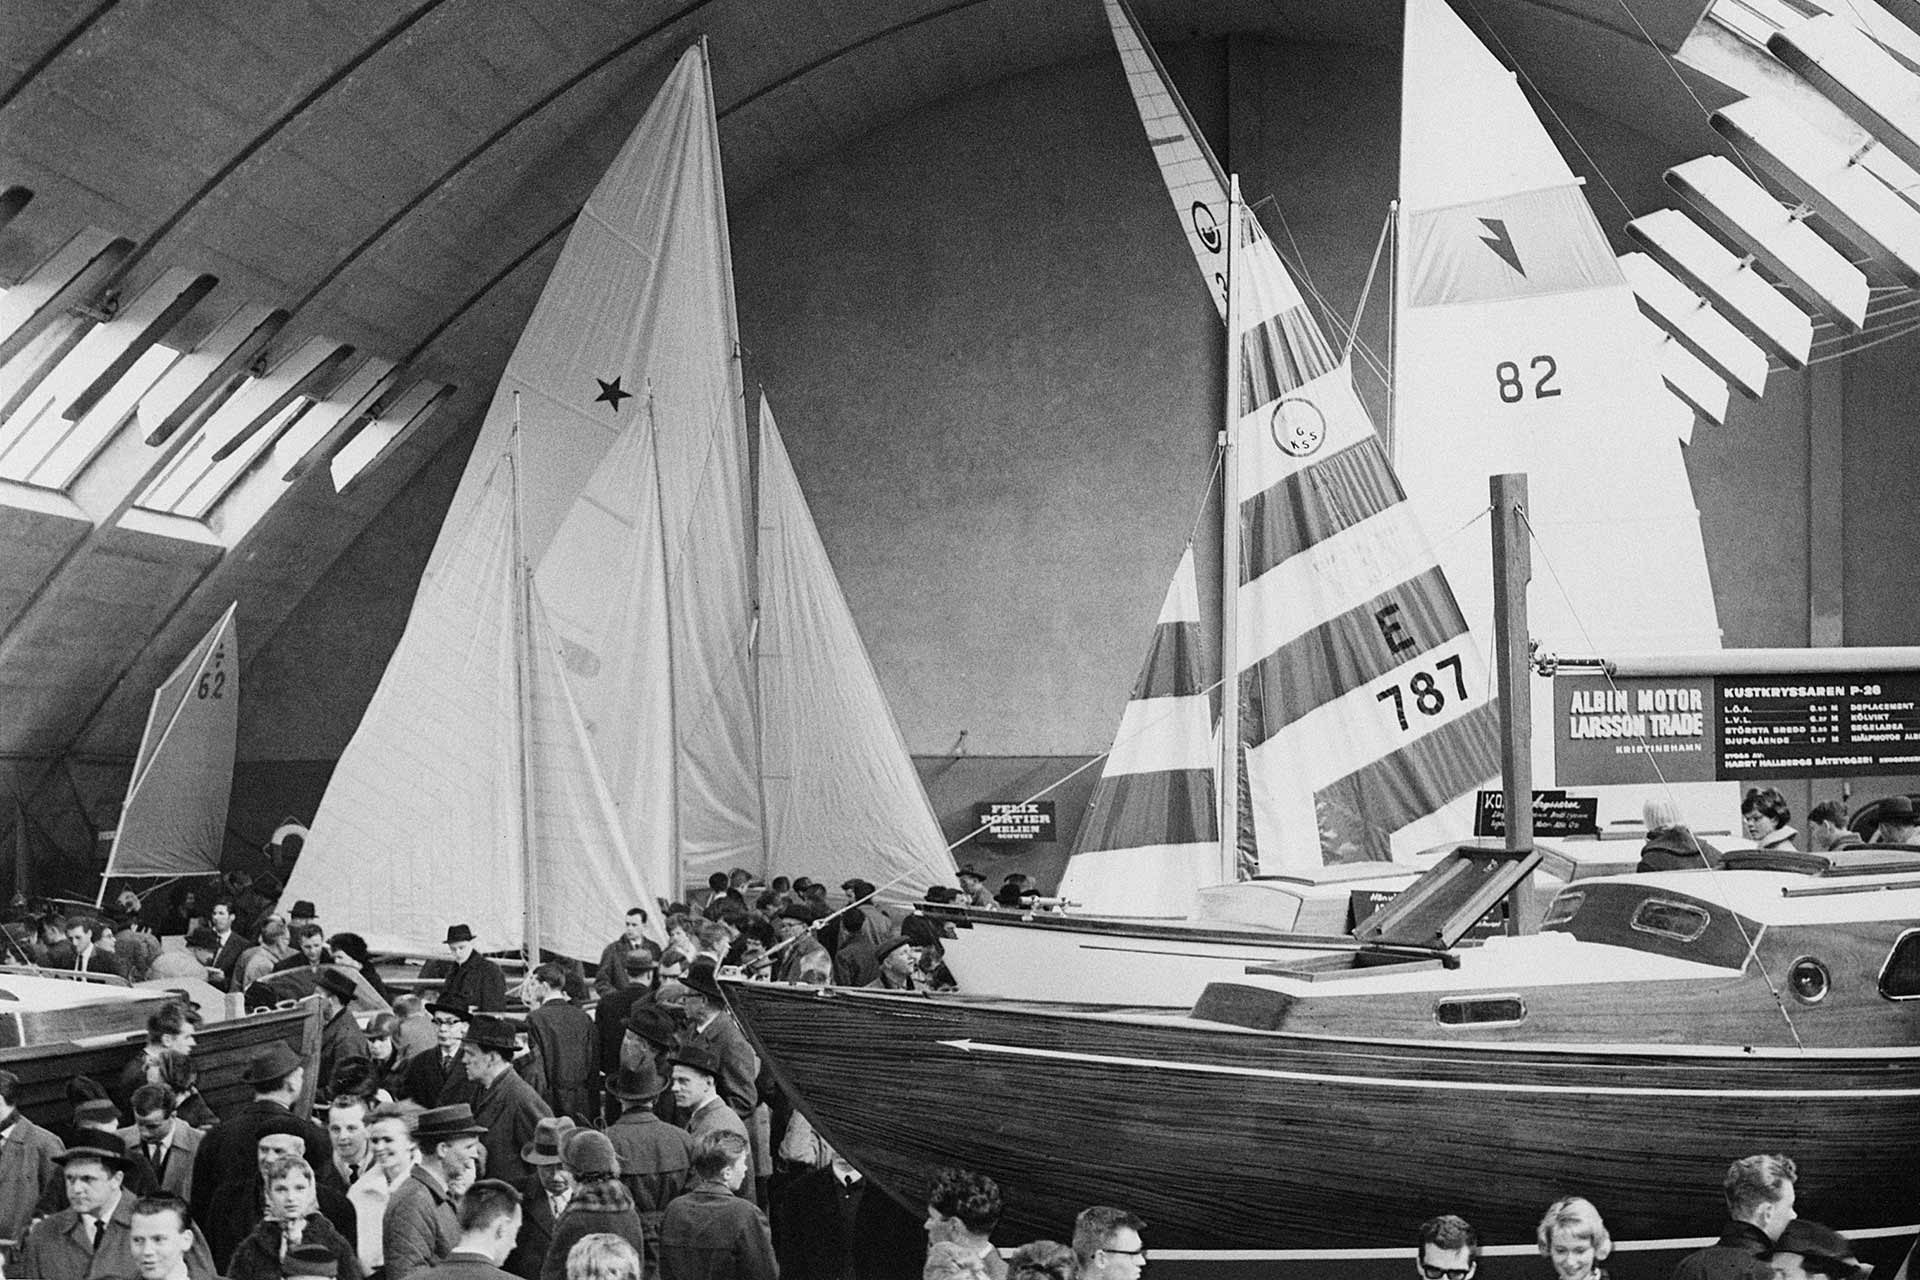 The Gothenburg Boat Show 1962